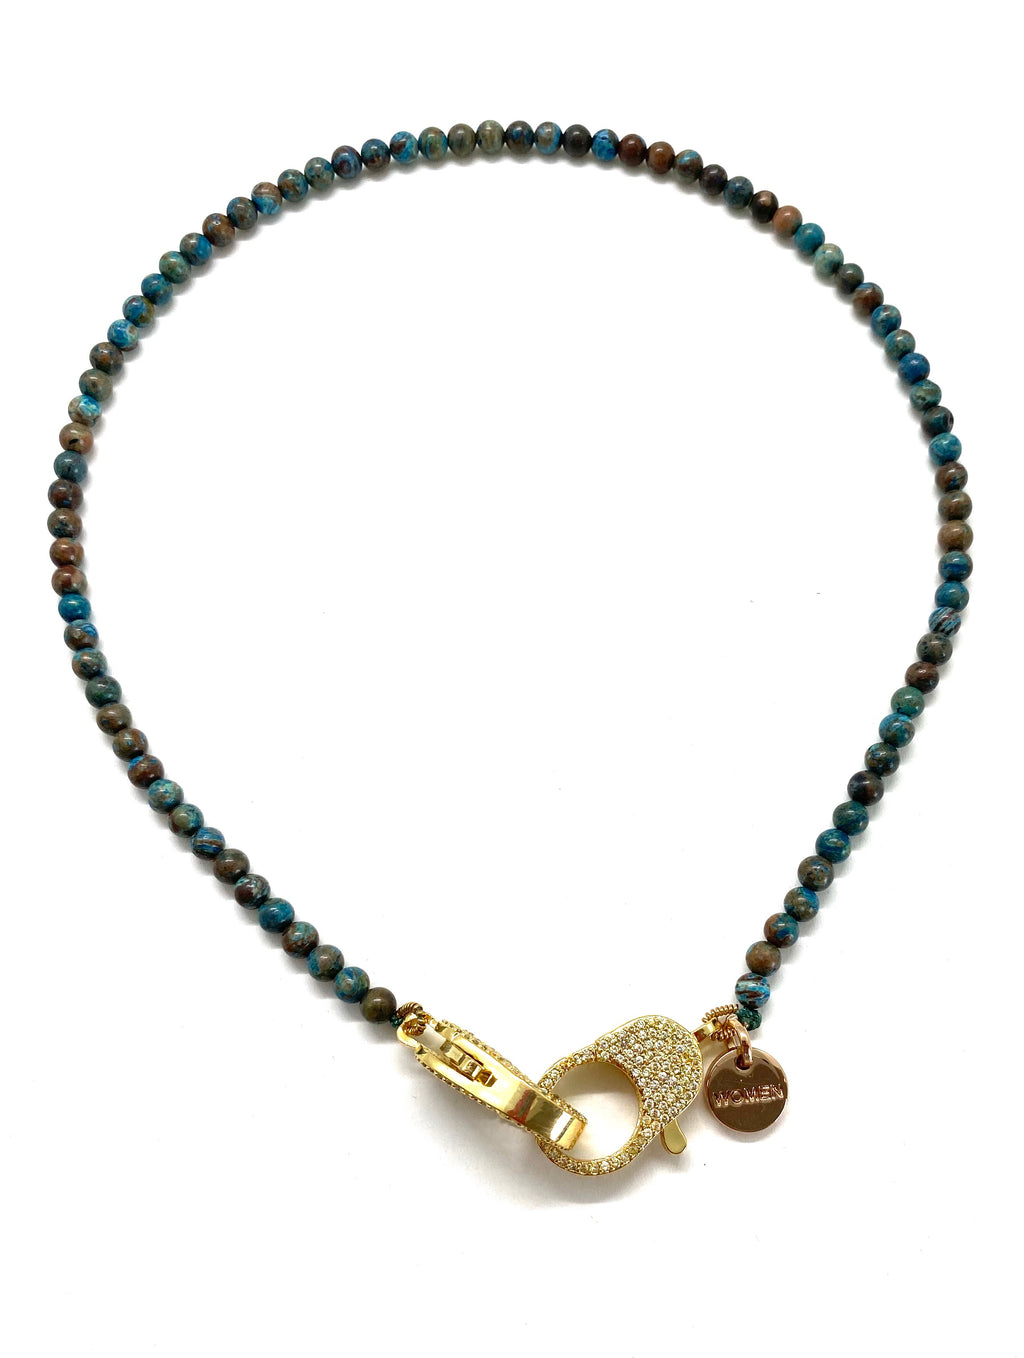 Clip to impact, Blue crazy lace agate Christine necklace, with gold zirconia clips.